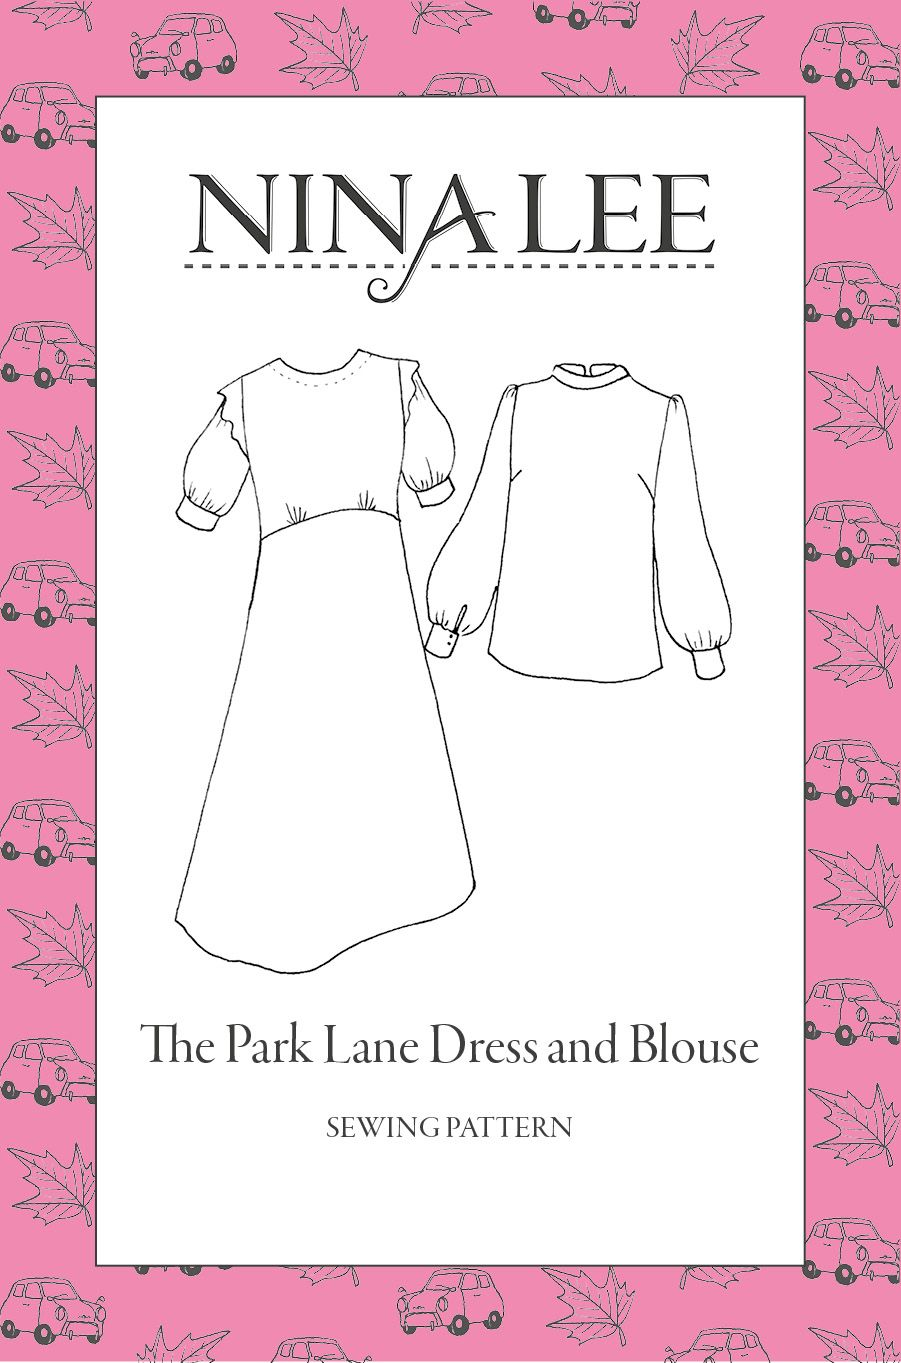 The Park Lane Dress Sewing Pattern